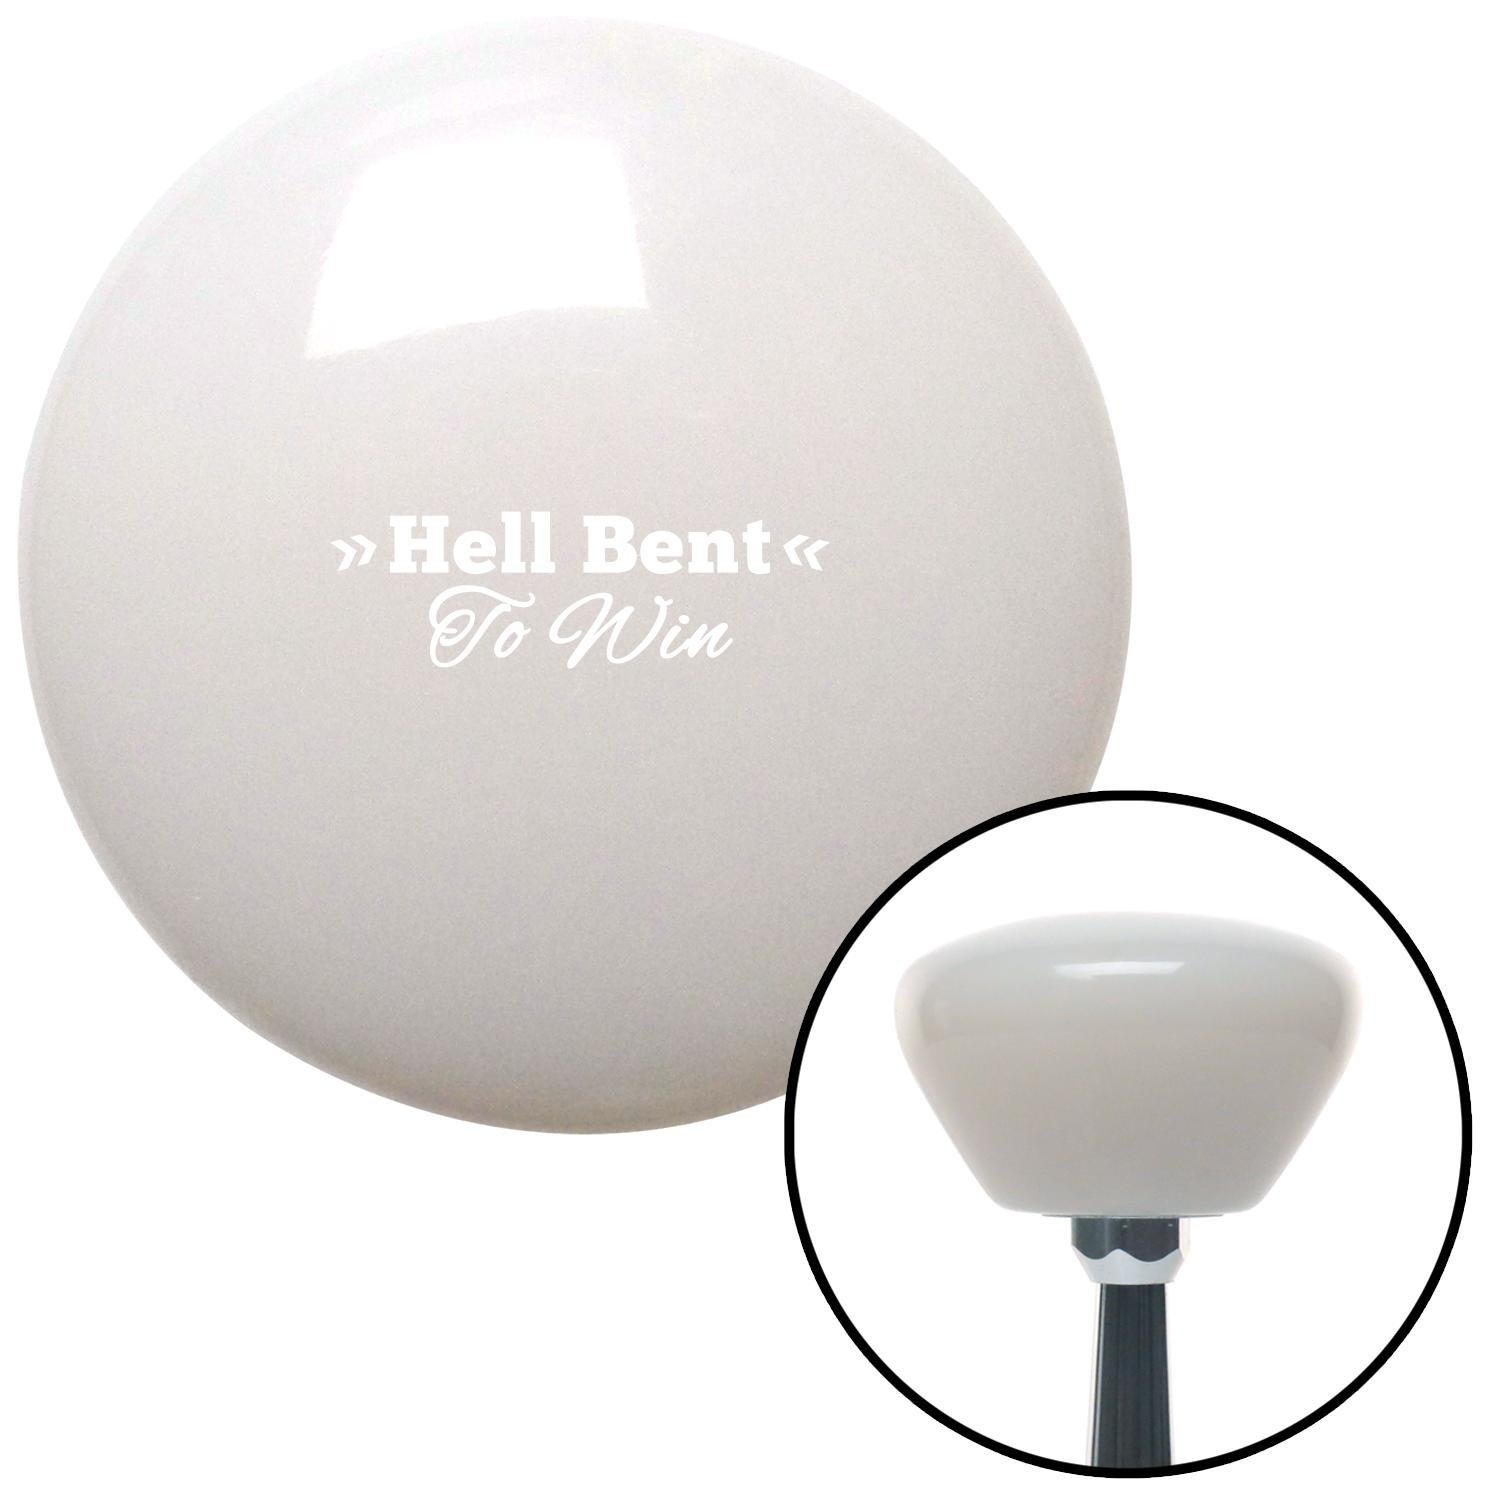 American Shifter 280701 Shift Knob White Hell Bent White Retro with M16 x 1.5 Insert